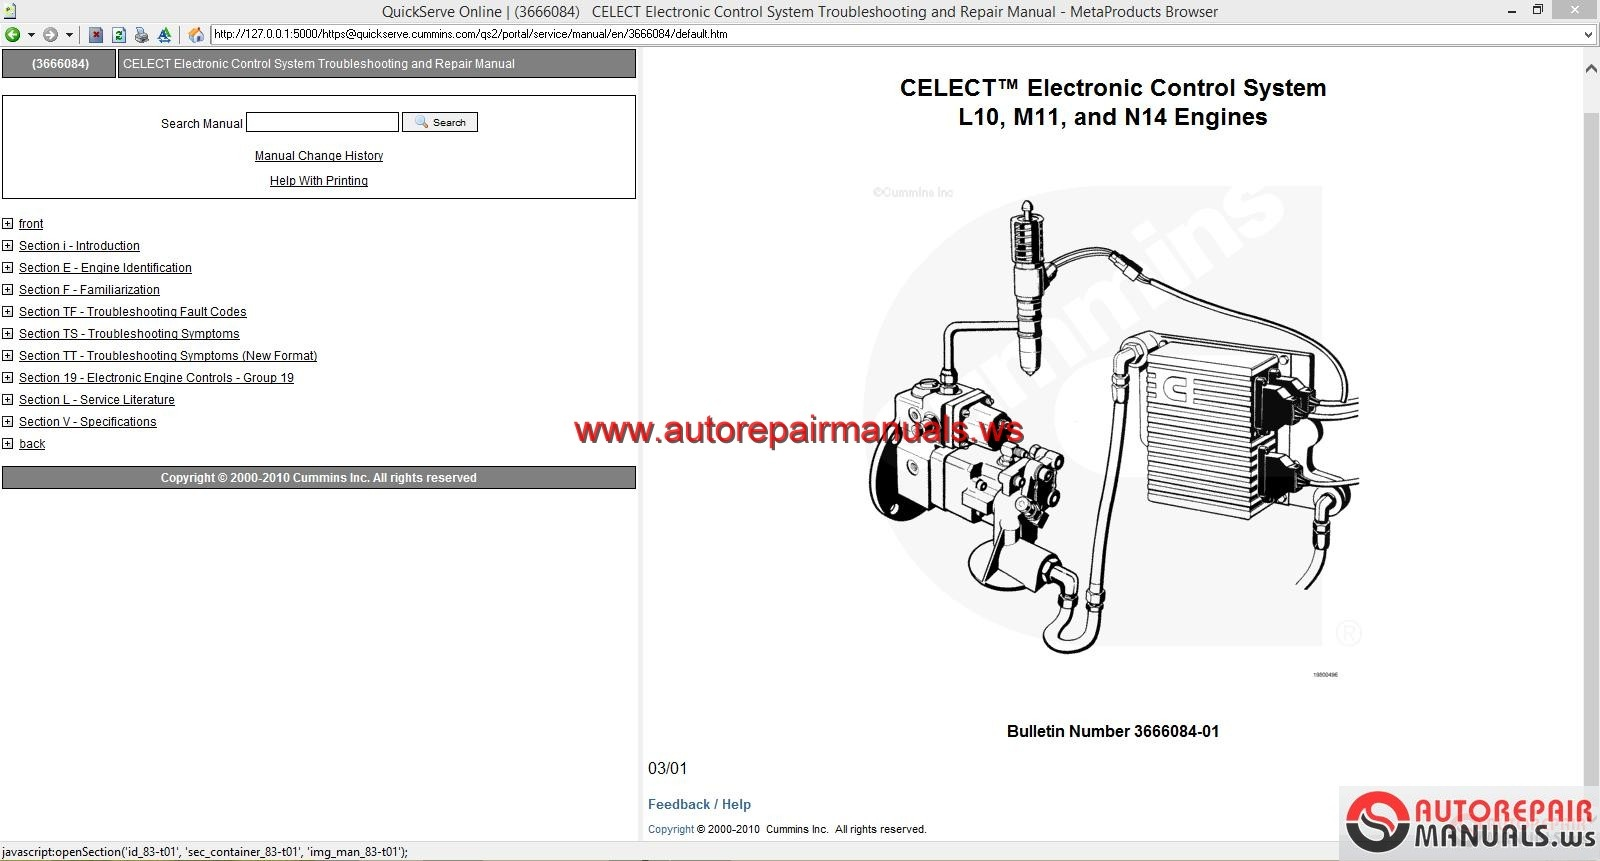 Keygen Autorepairmanuals.ws: Cummins CELECT Electronic